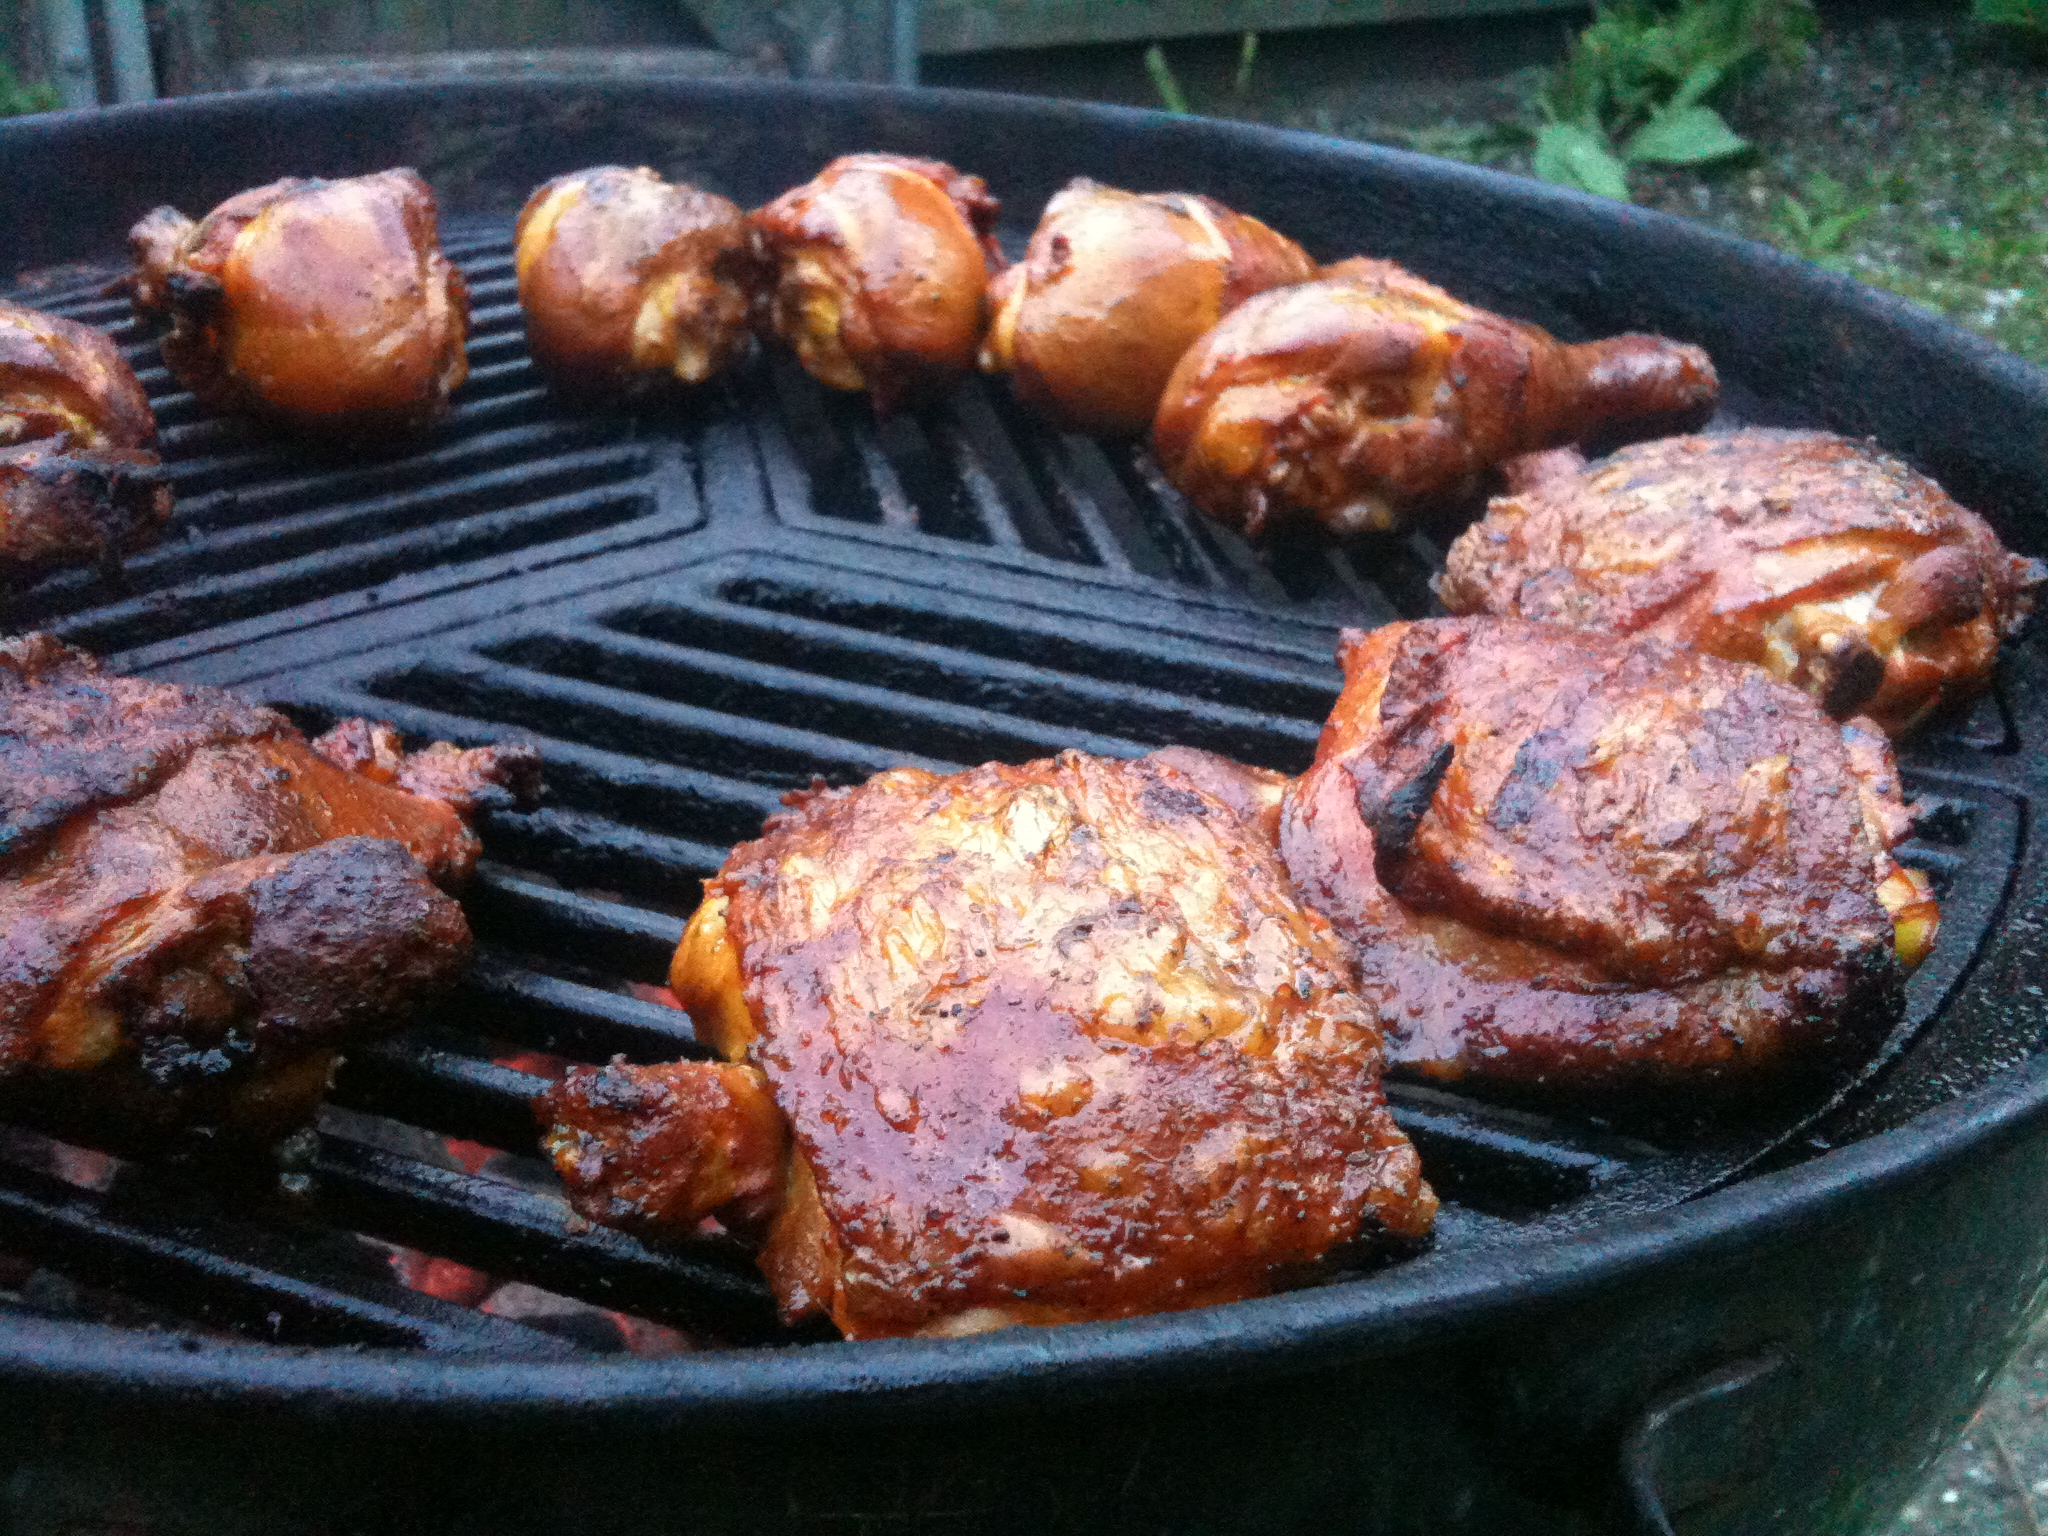 My back-yard :: Sazon and Adobo seasoned chicken - grilled to perfection.